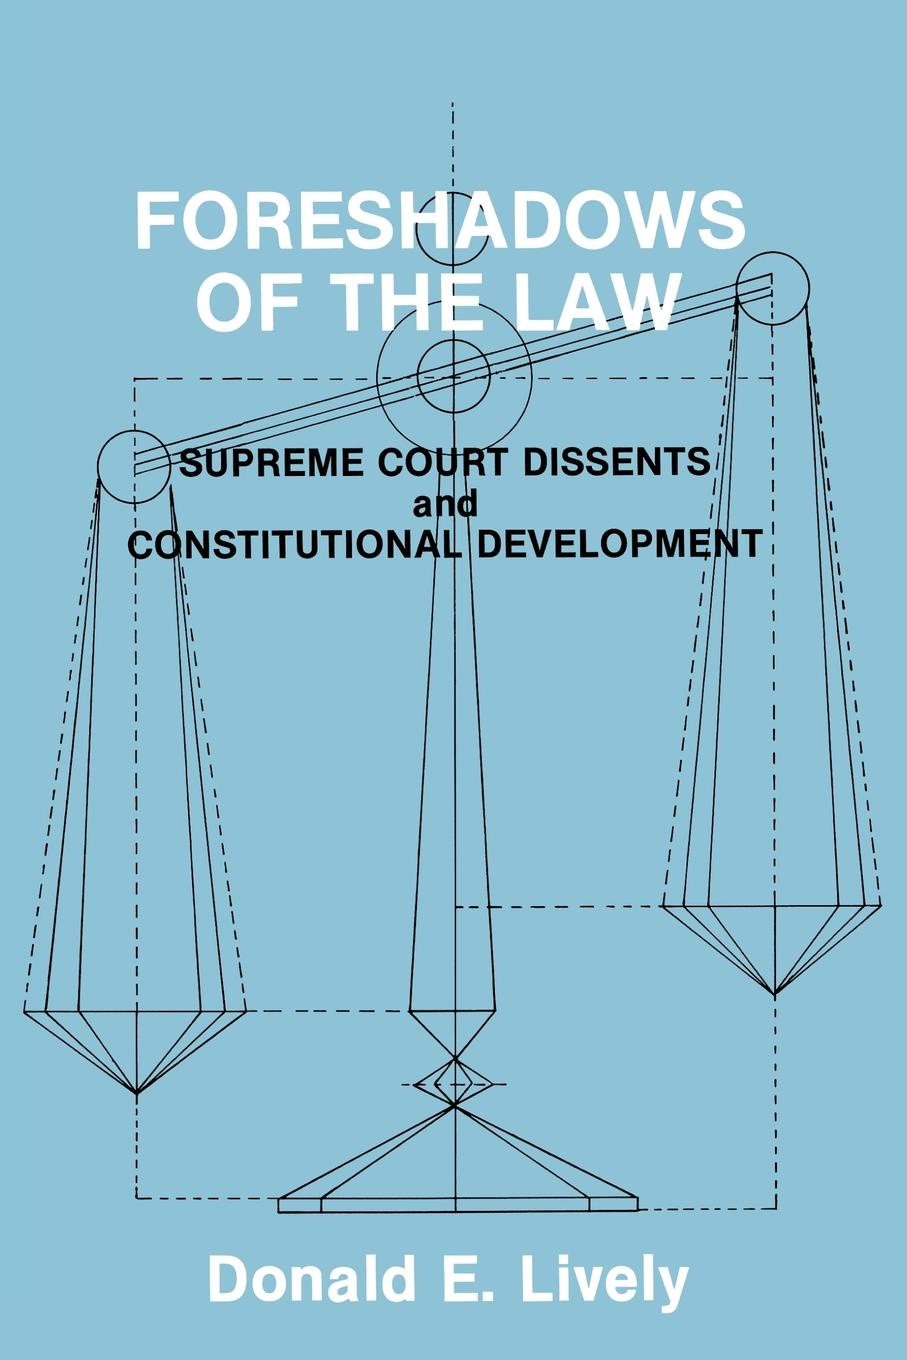 лучшая цена Donald E. Lively, Unknown Foreshadows of the Law. Supreme Court Dissents and Constitutional Development